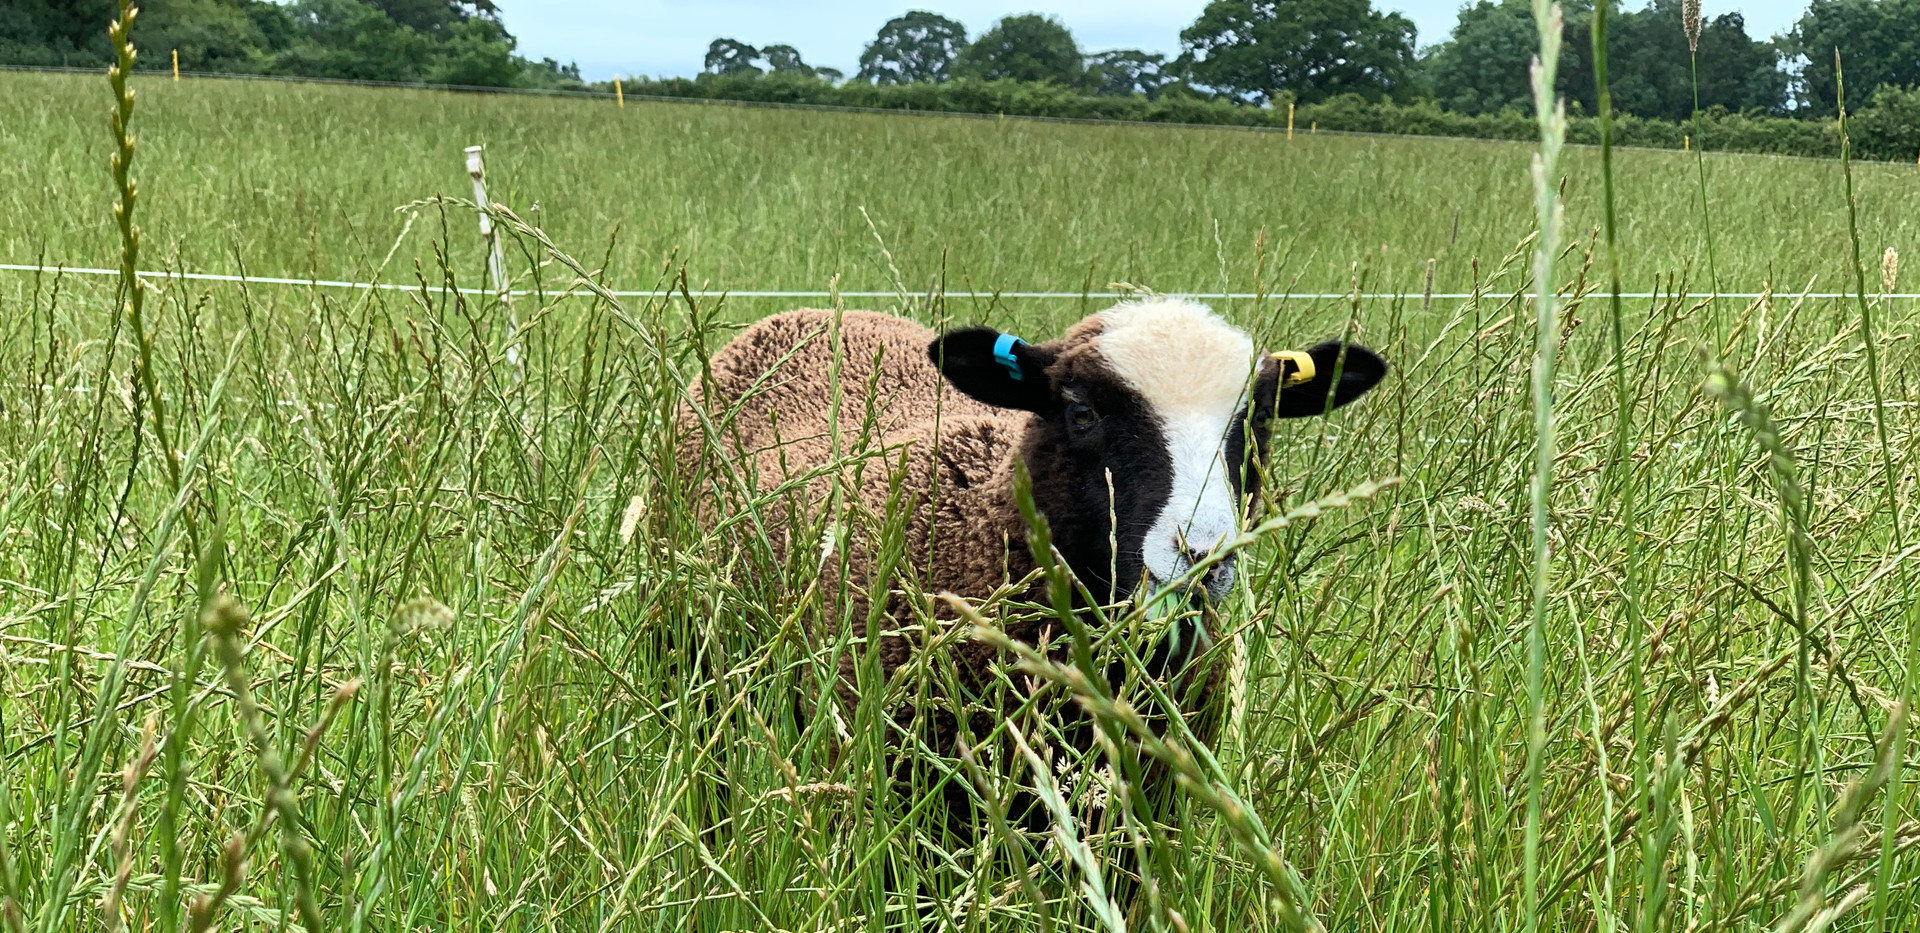 One of the four black lambs